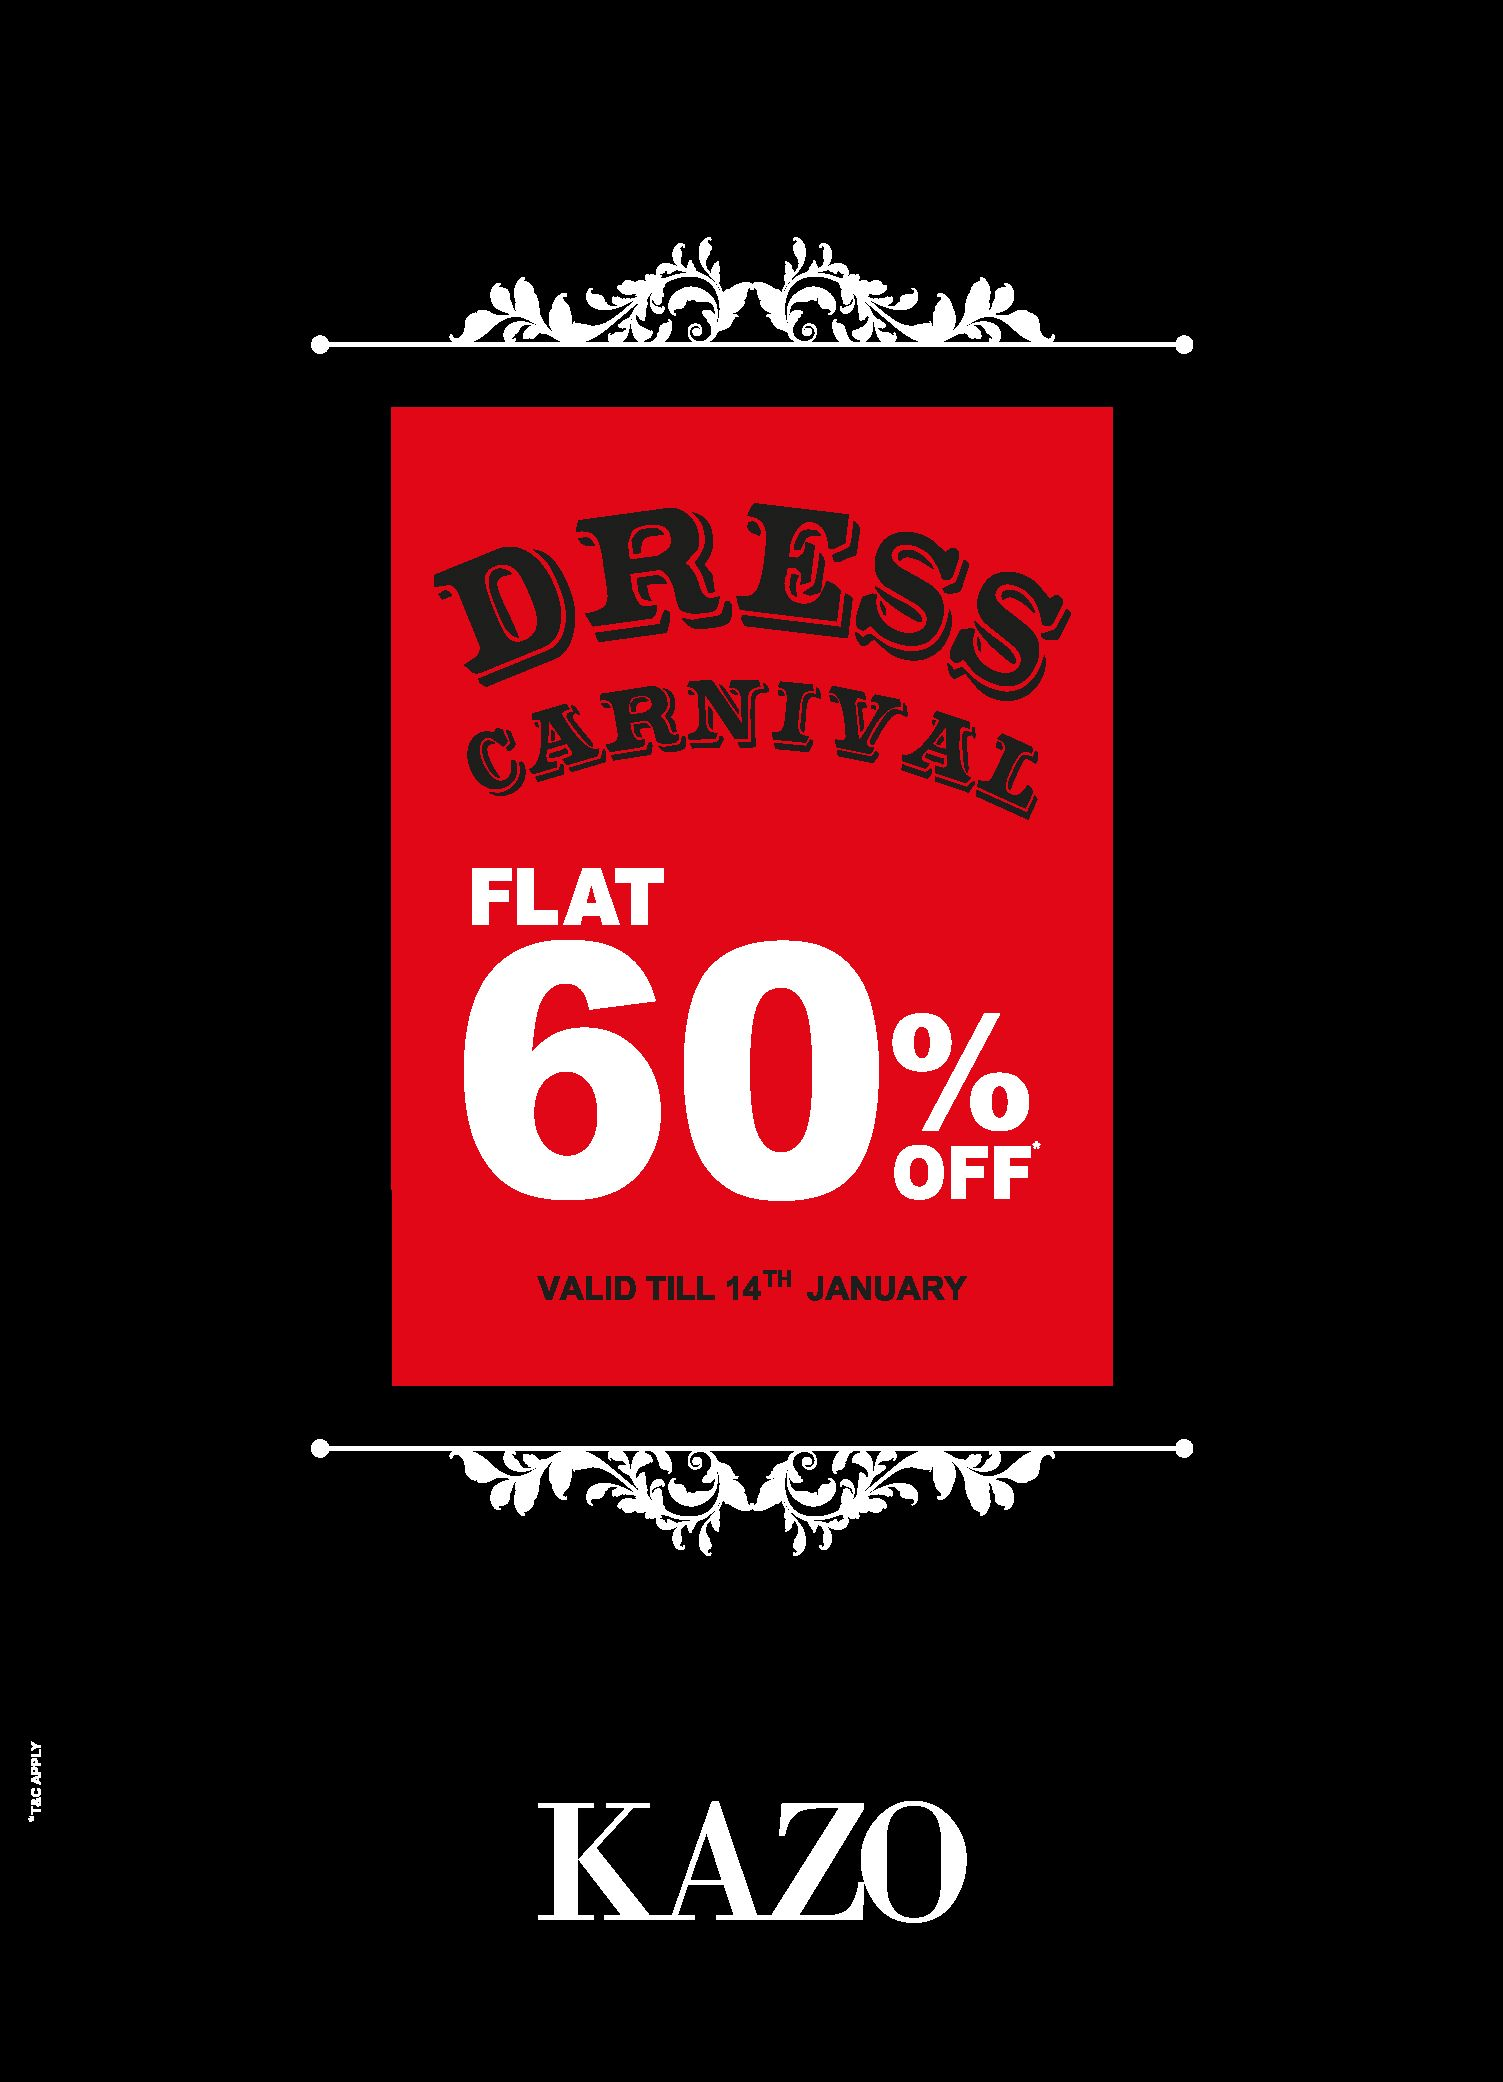 Kazo dress carnival flat 60 off on all dresses style yourself dress carnival flat off on all dresses style yourself to perfection with kazos collection visit your nearest store now kristyandbryce Image collections